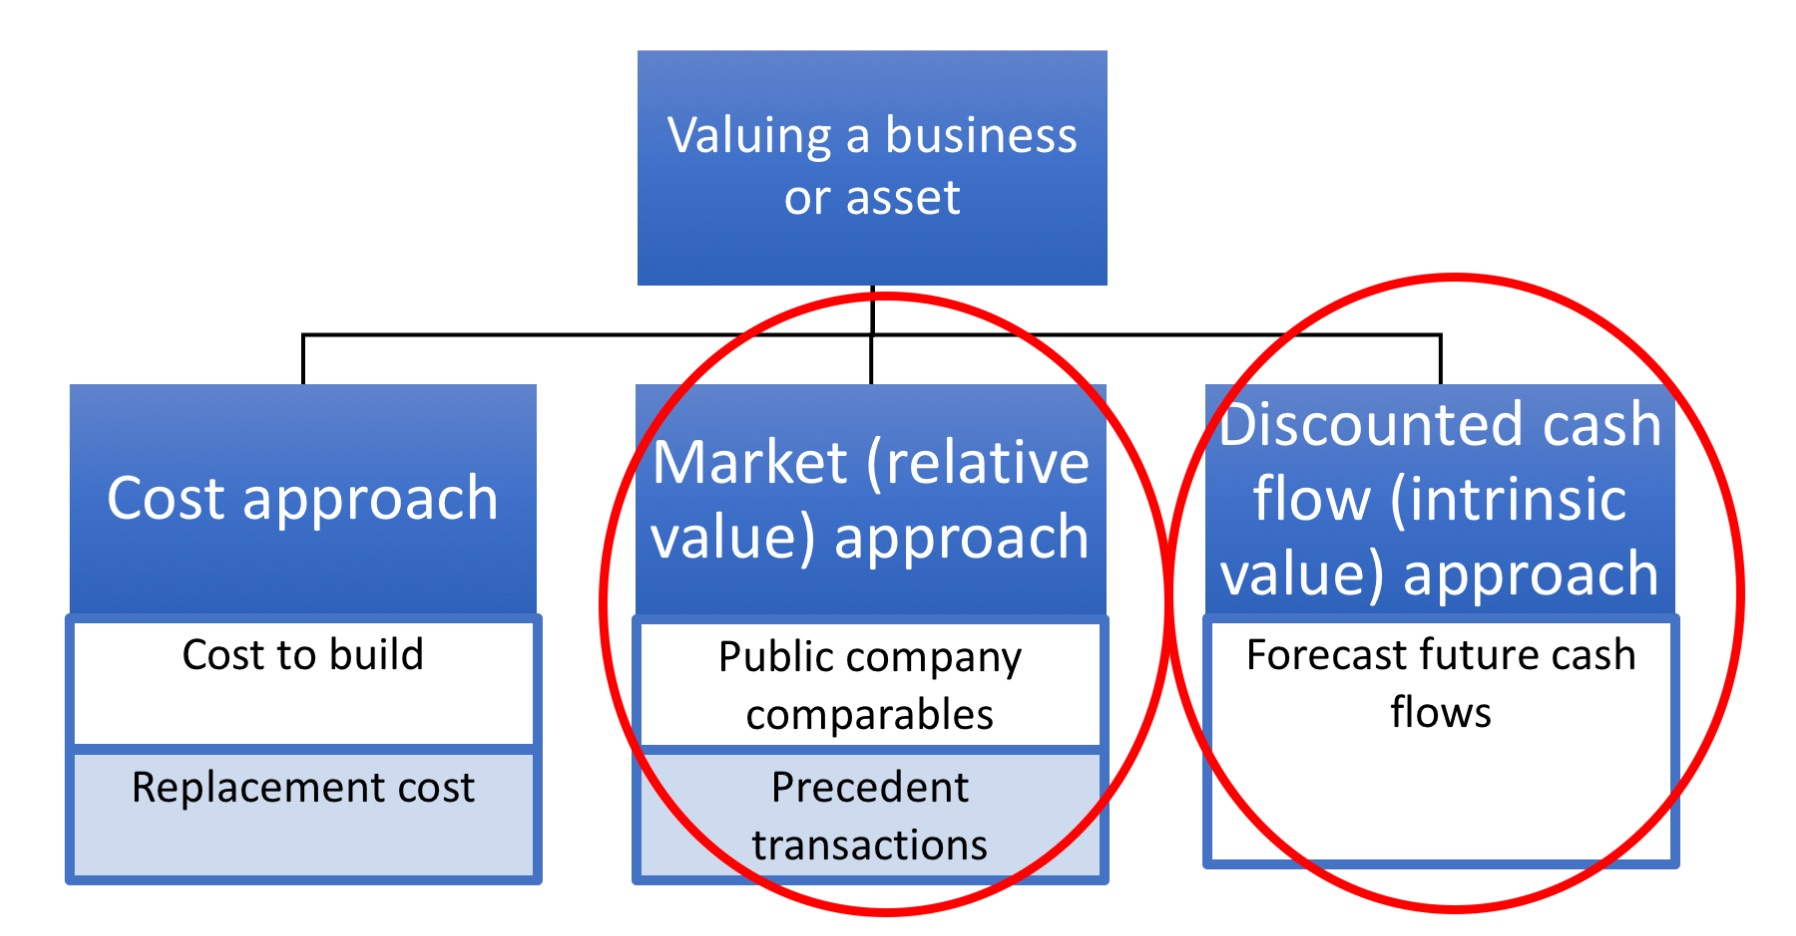 Three approaches to valuing a businesss or asset